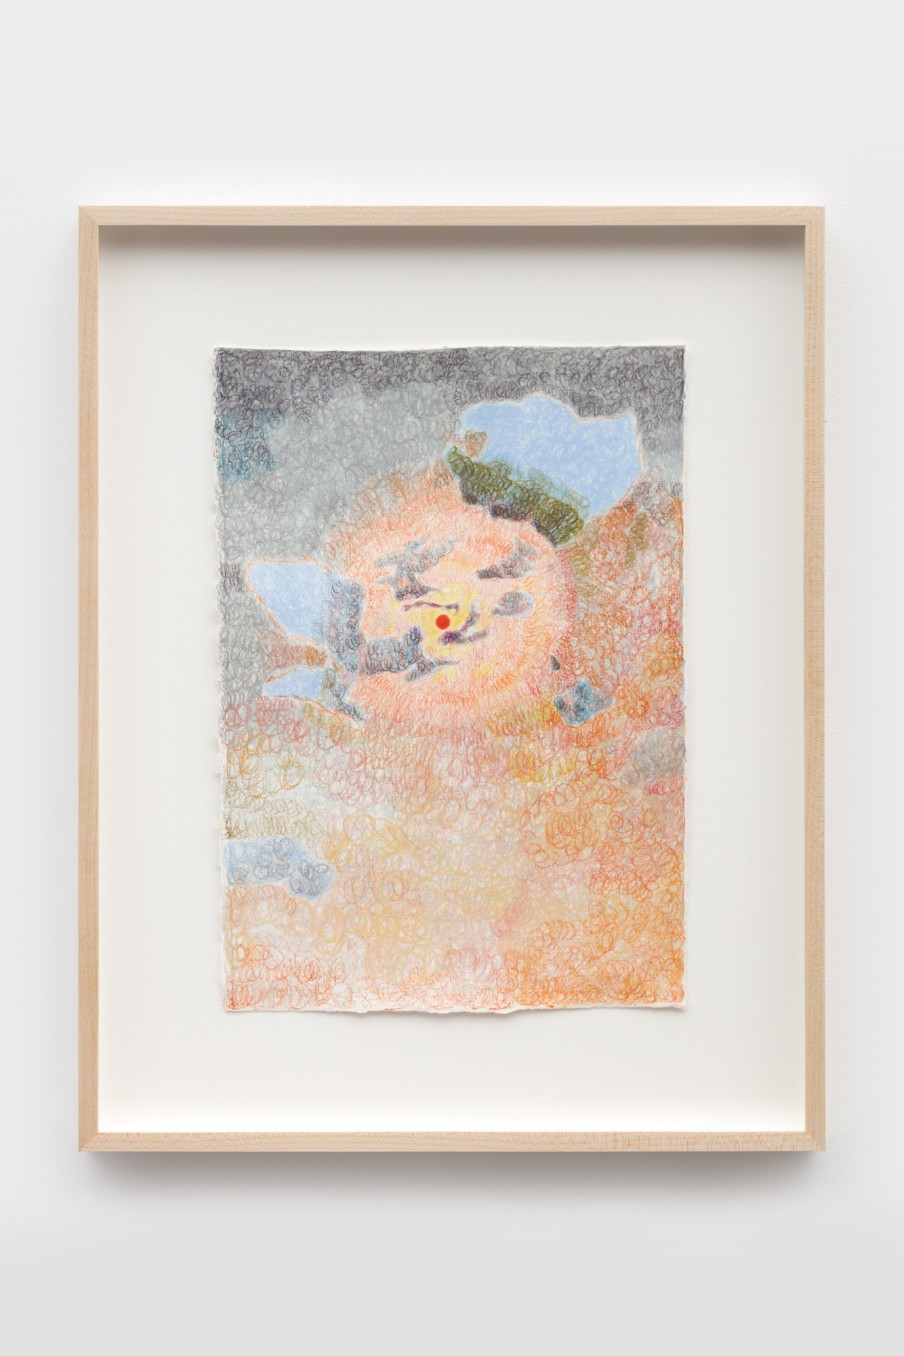 Anthony Cudahy Wildfire sky (NYC), 2021 Colored pencil on paper Image: 35.6 x 25.4 cm 14 x 10 in Frame:...